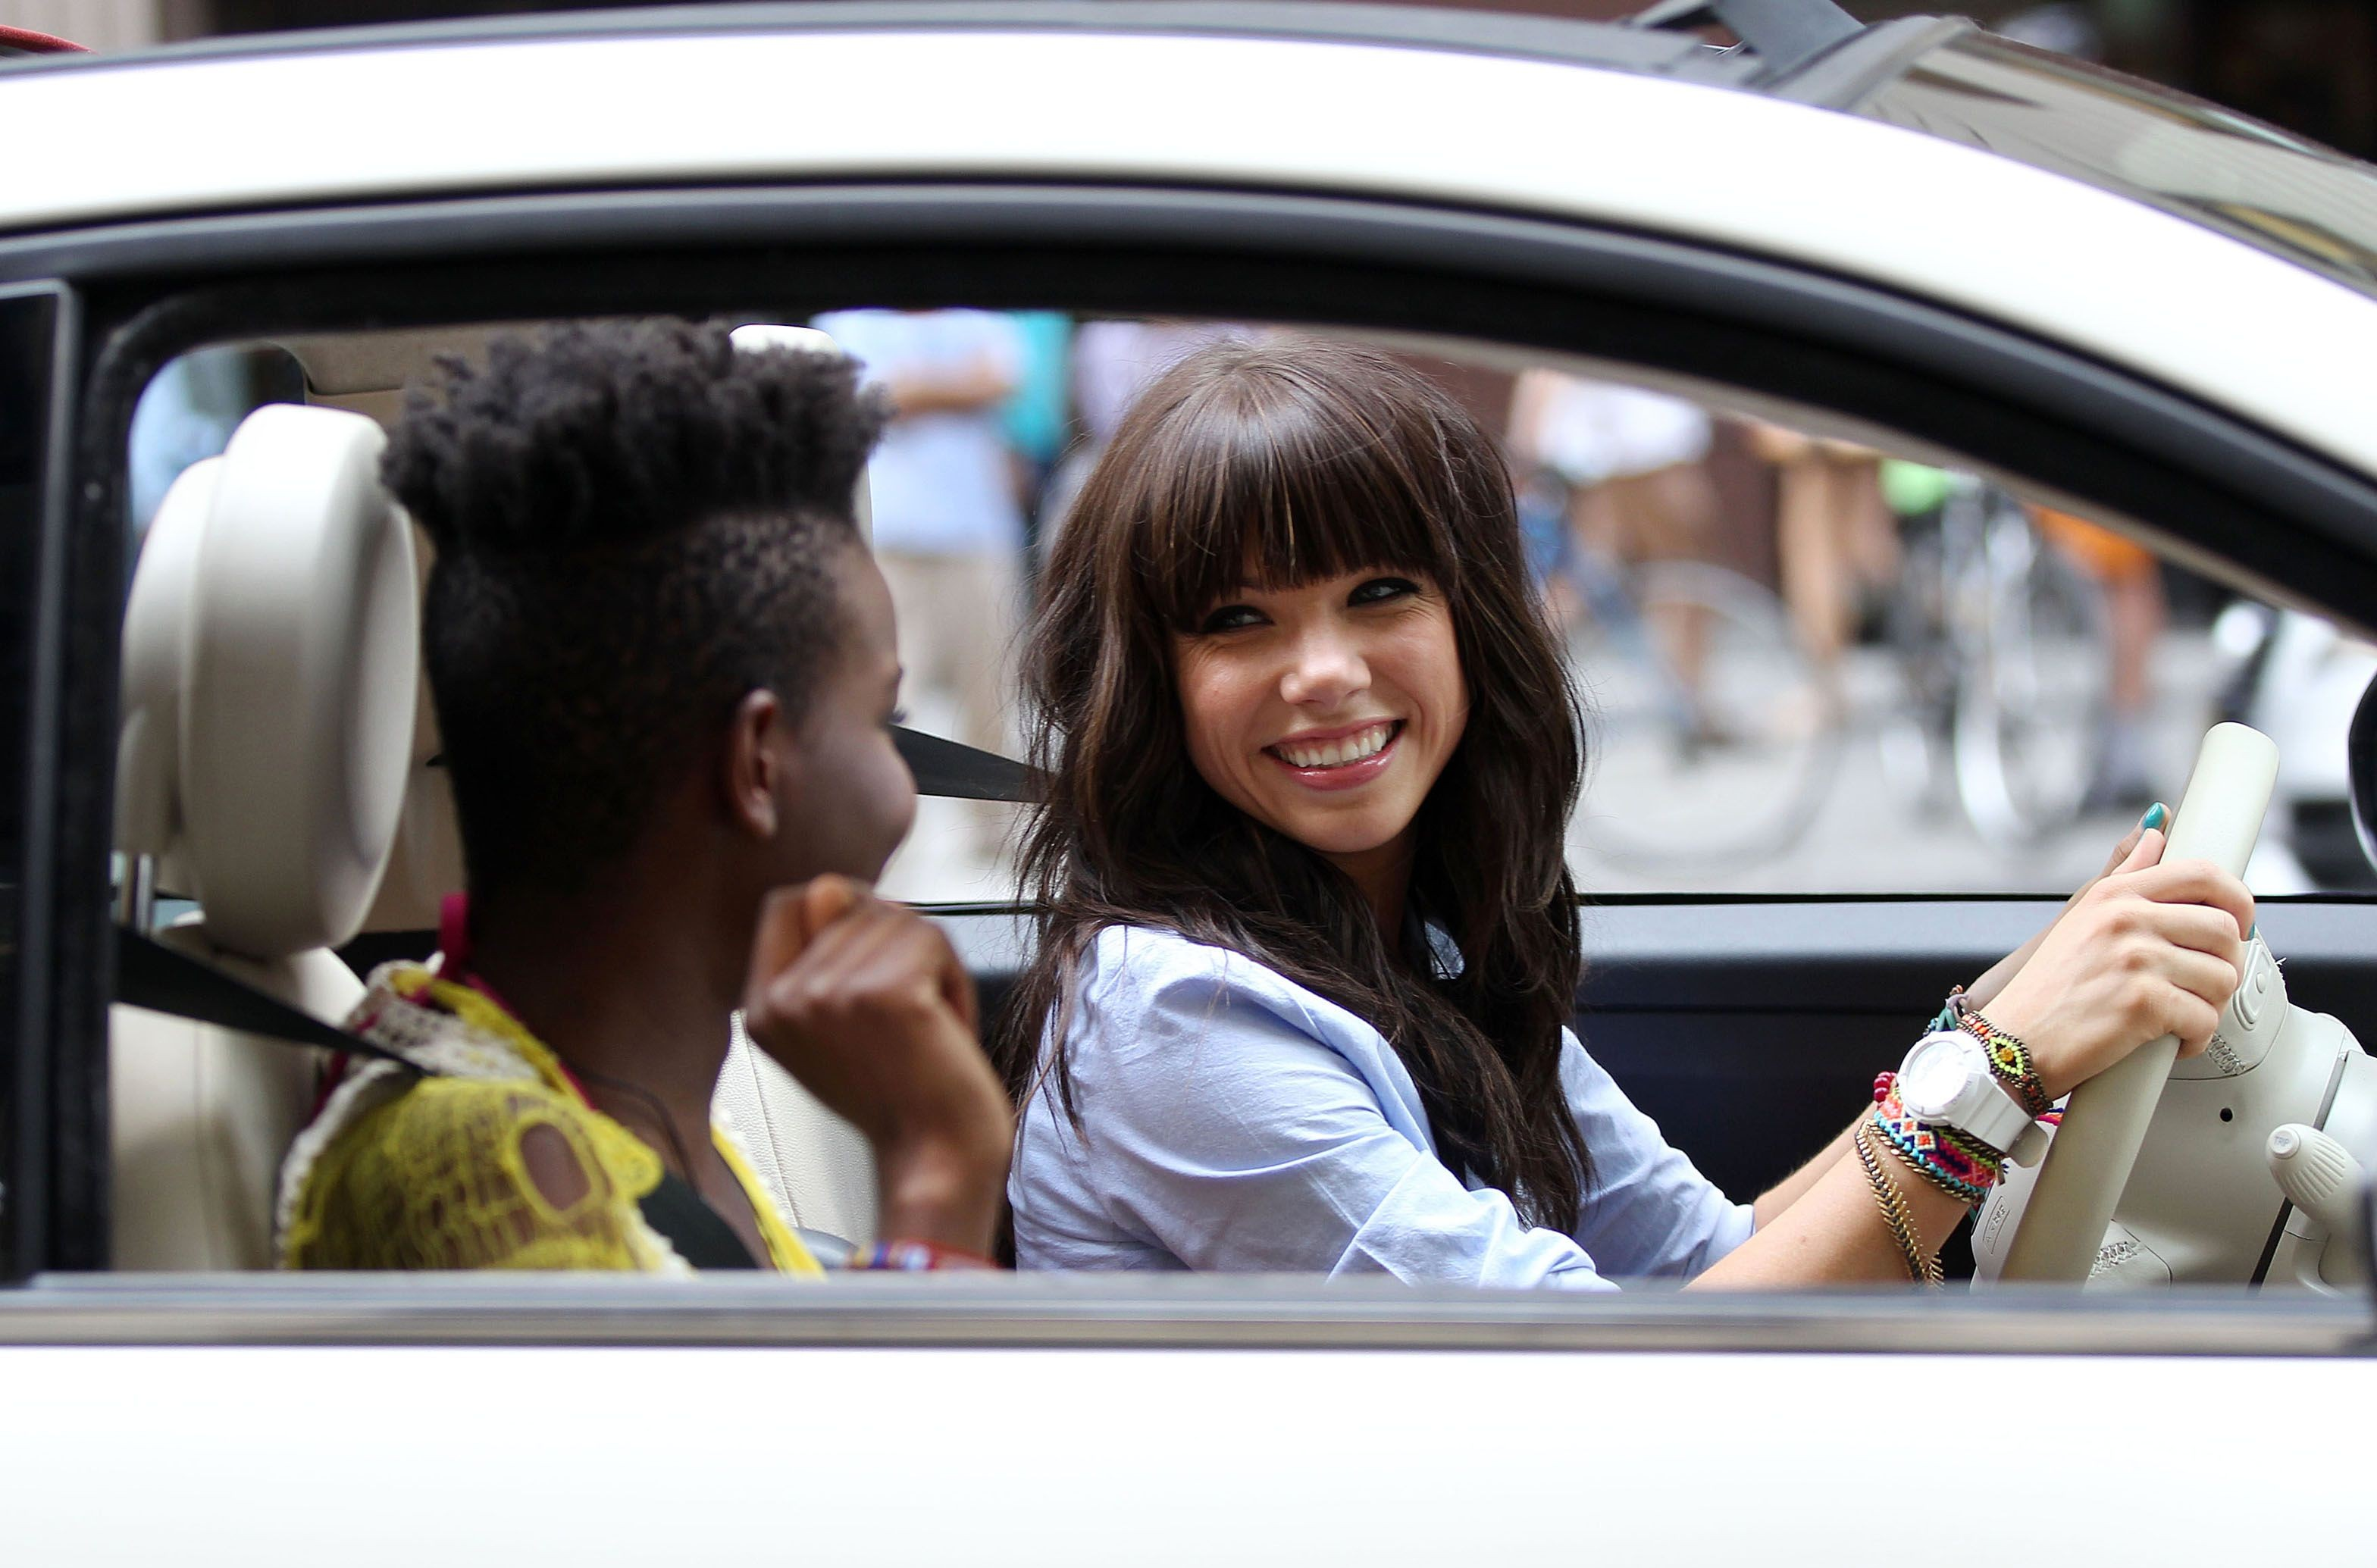 Carly rae jepsen موسیقی Video Shoot in New York